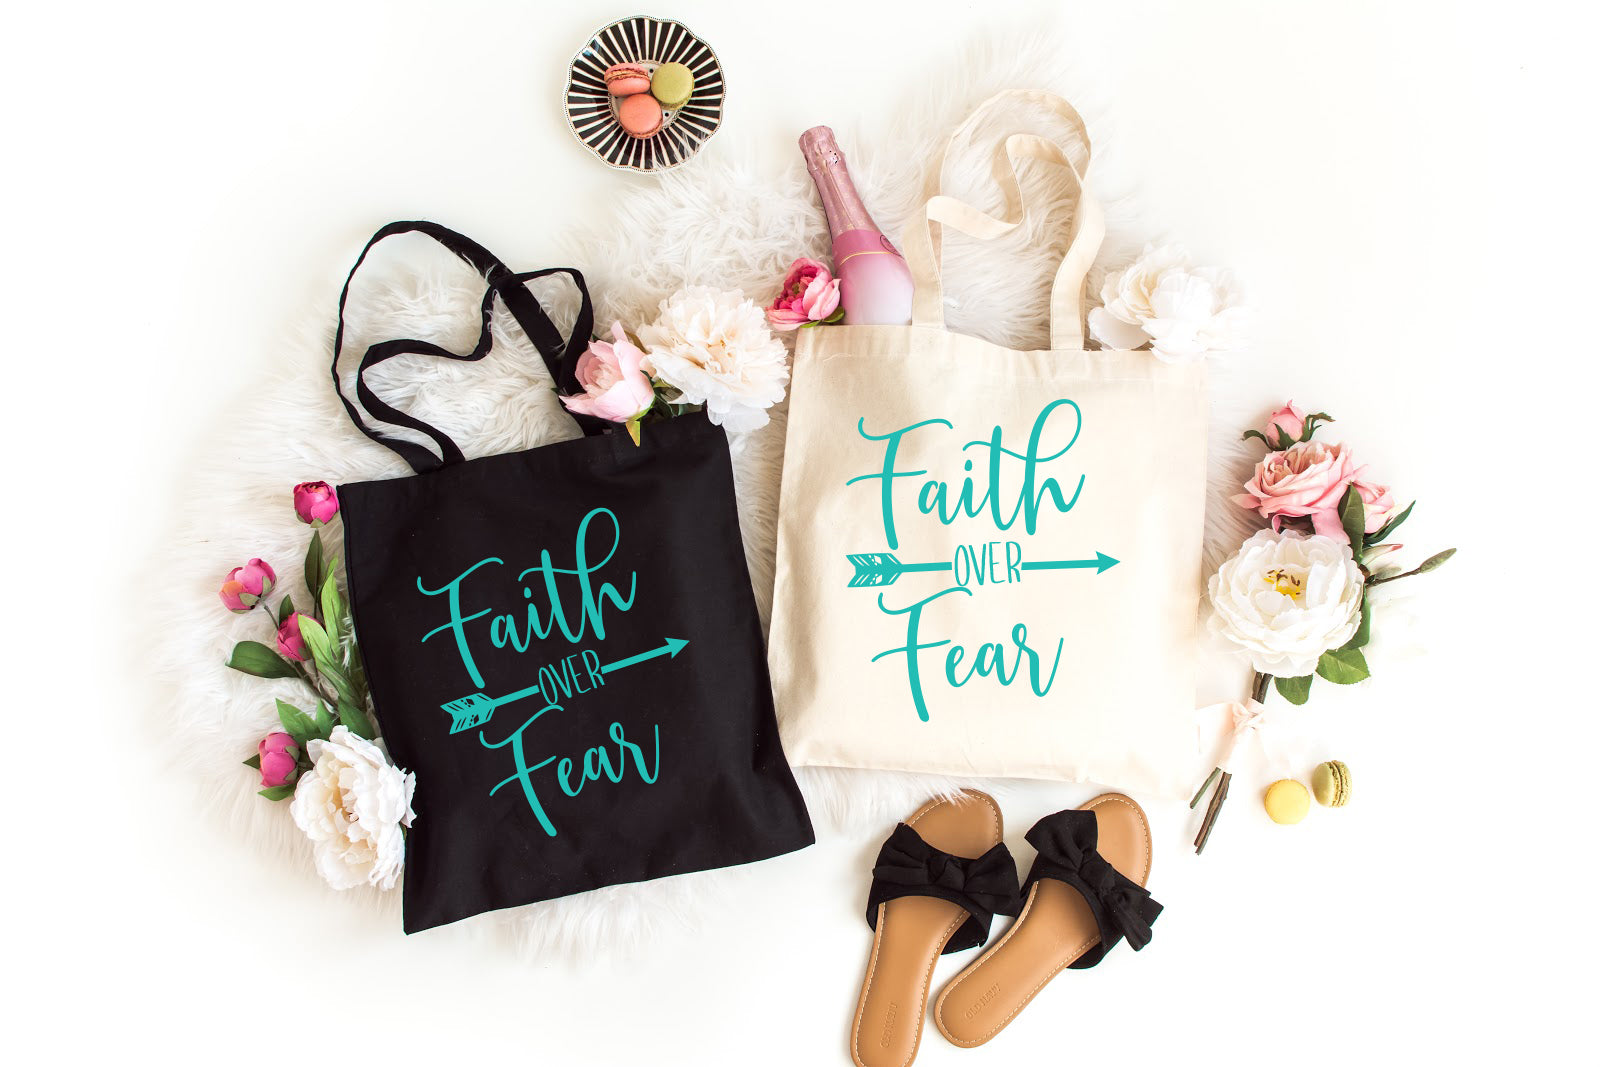 Faith over Fear Christian Tote Bag : Made in NYC